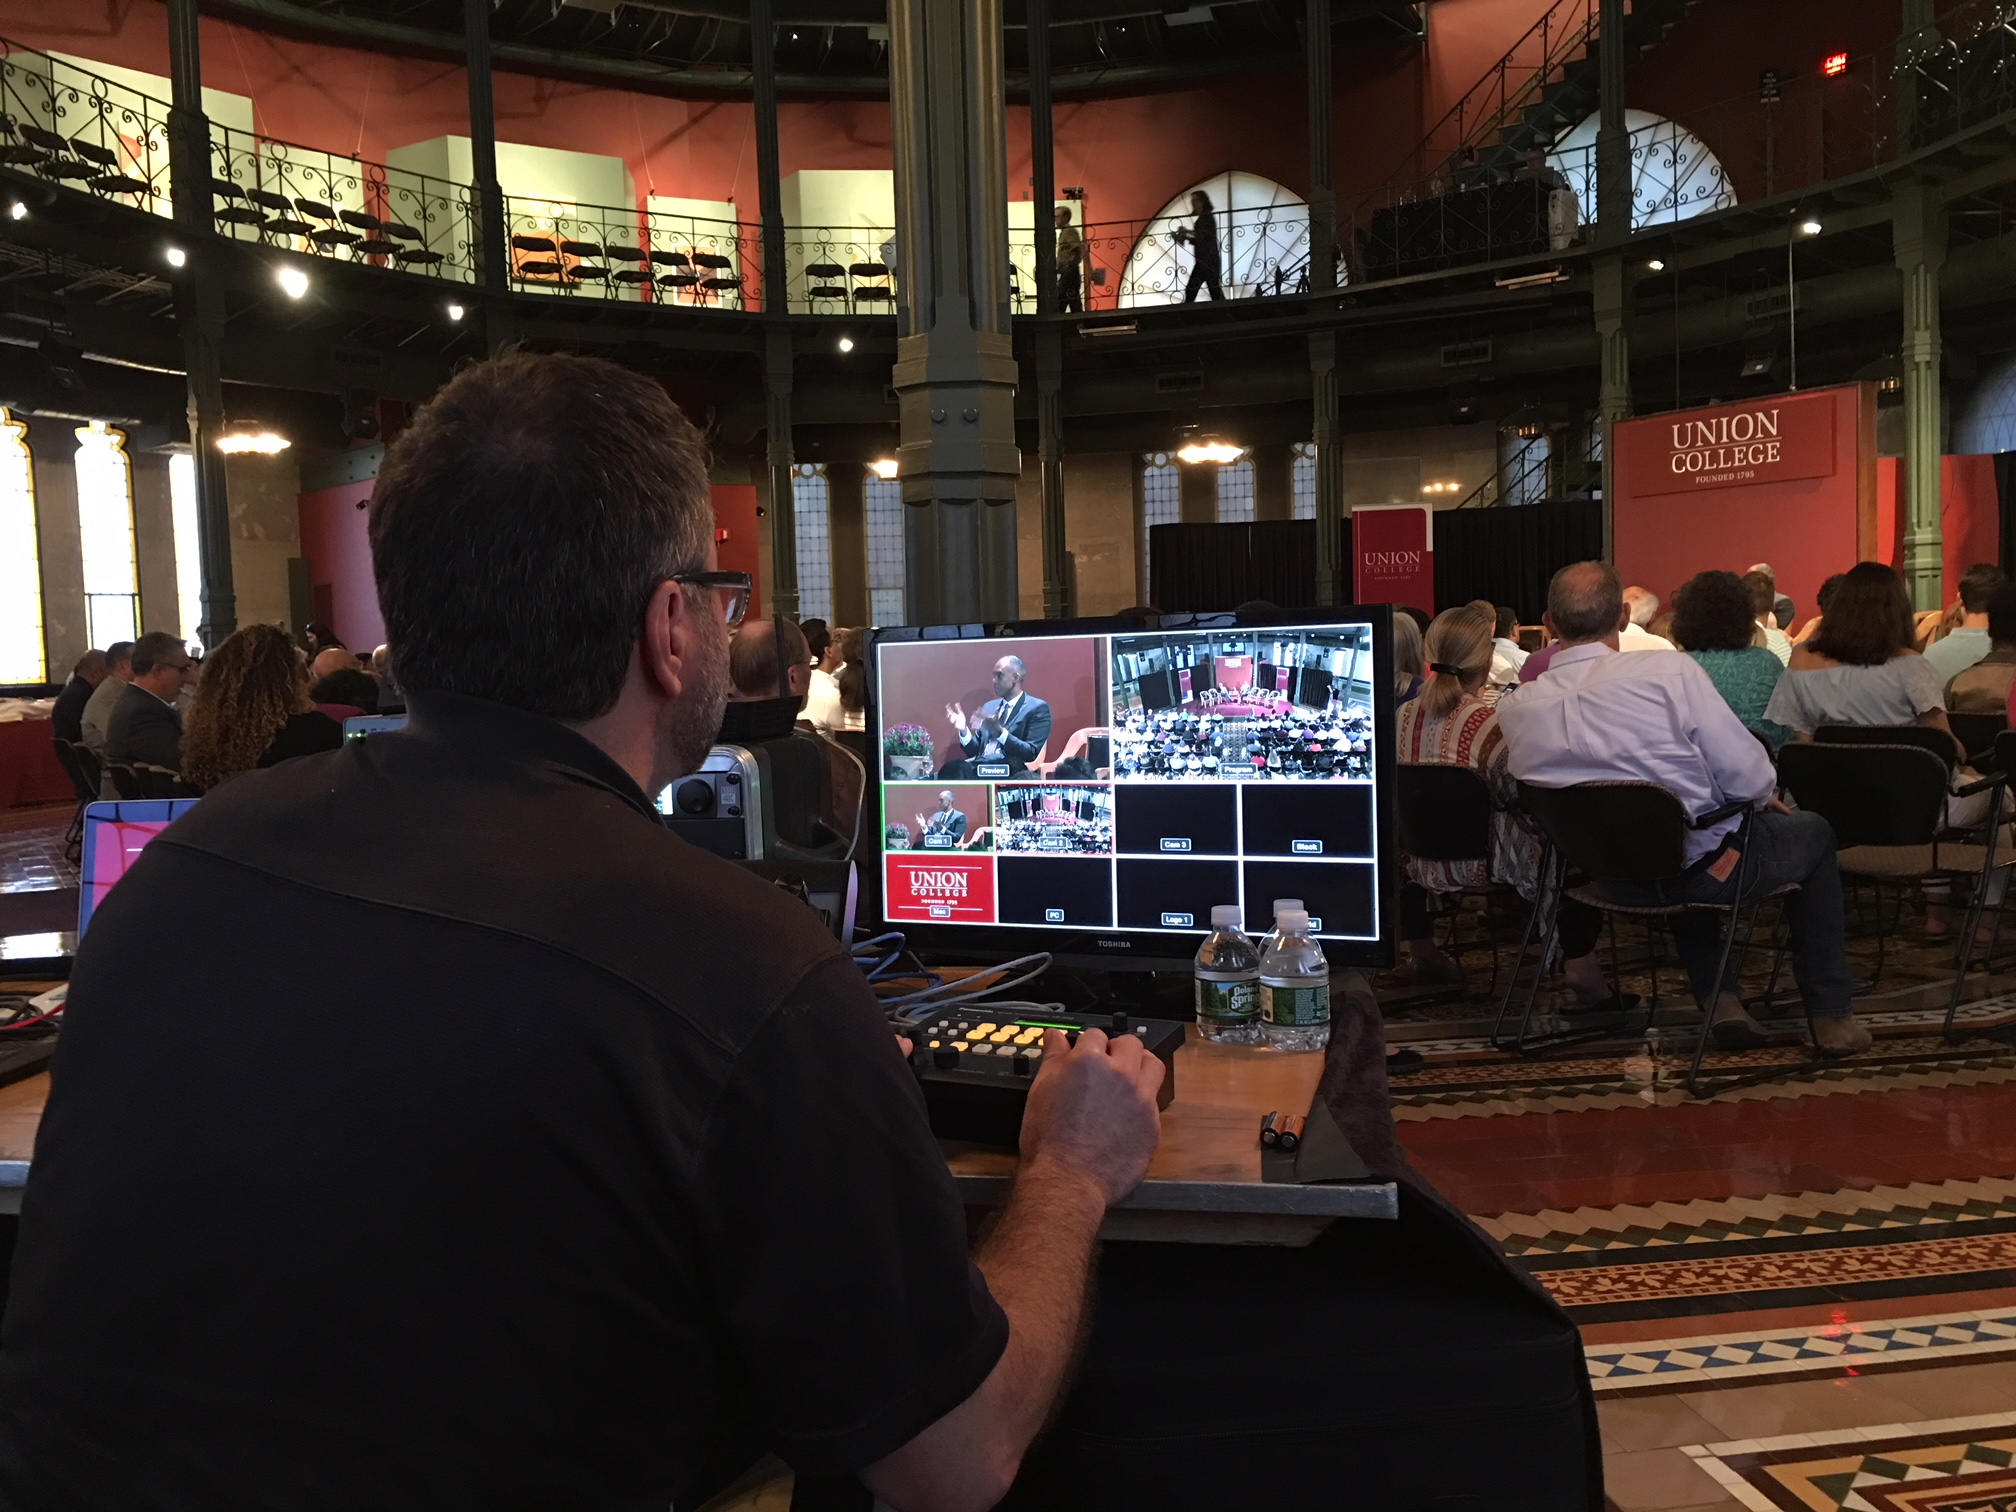 TVI provides audio and video production for the inauguration of the President of Union College